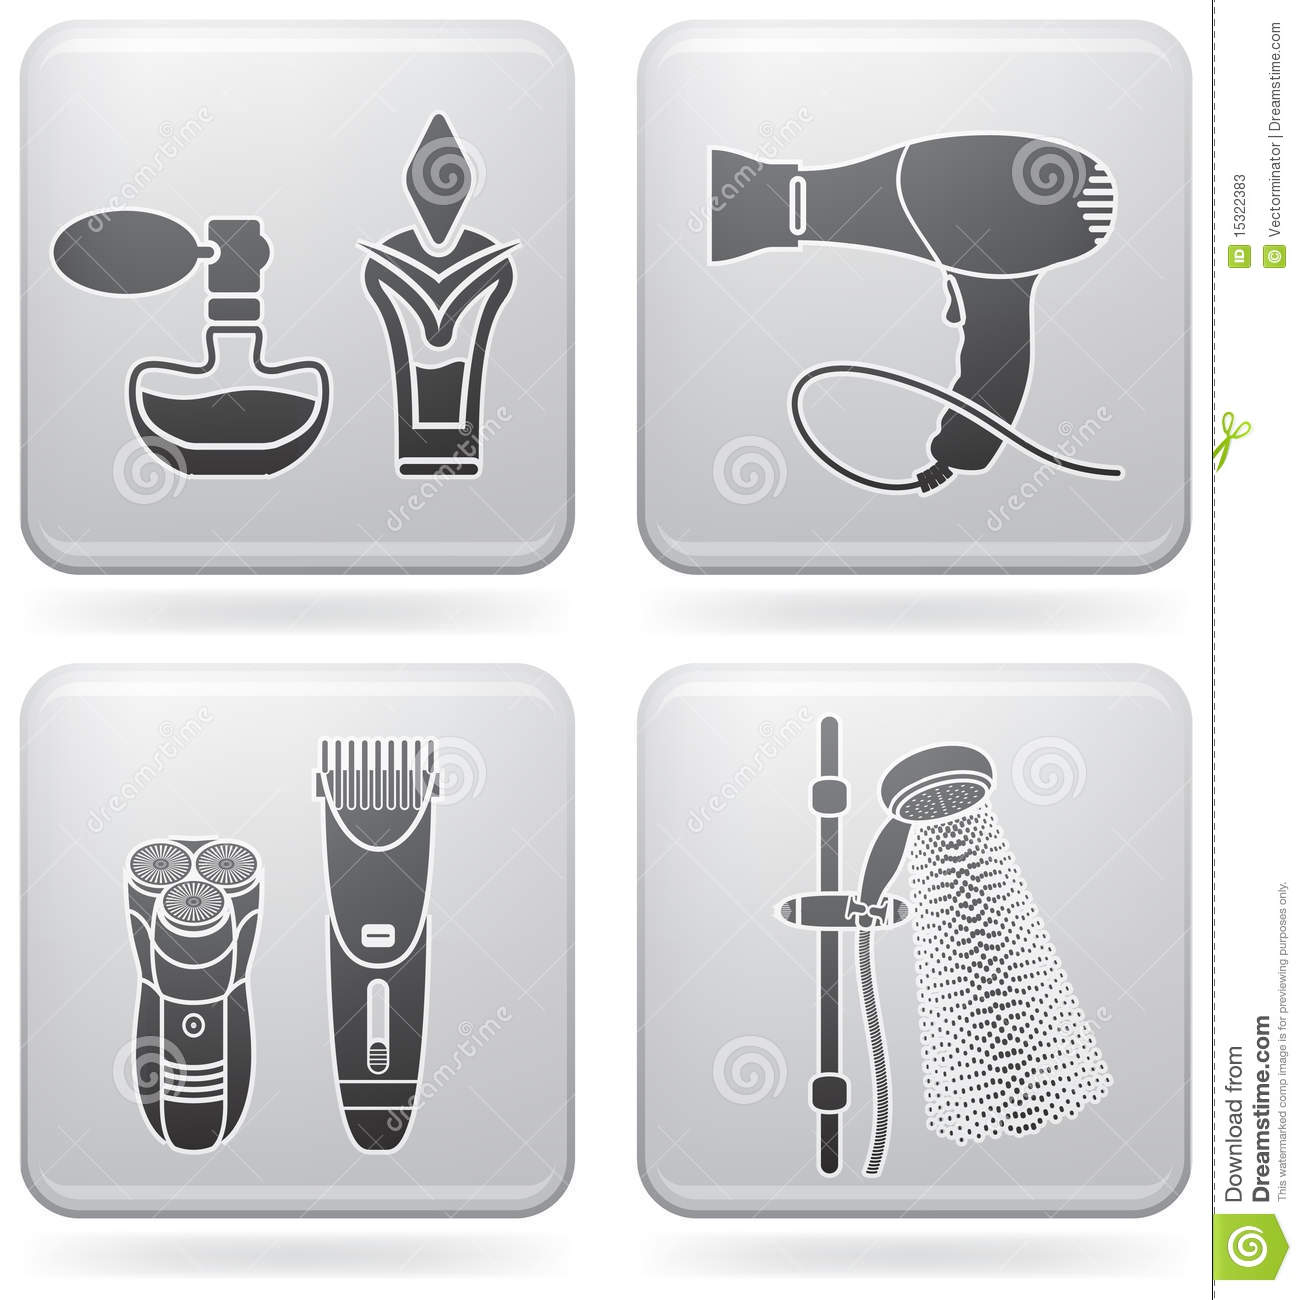 Bath utensils stock photos image 15322383 for Bathroom utensils